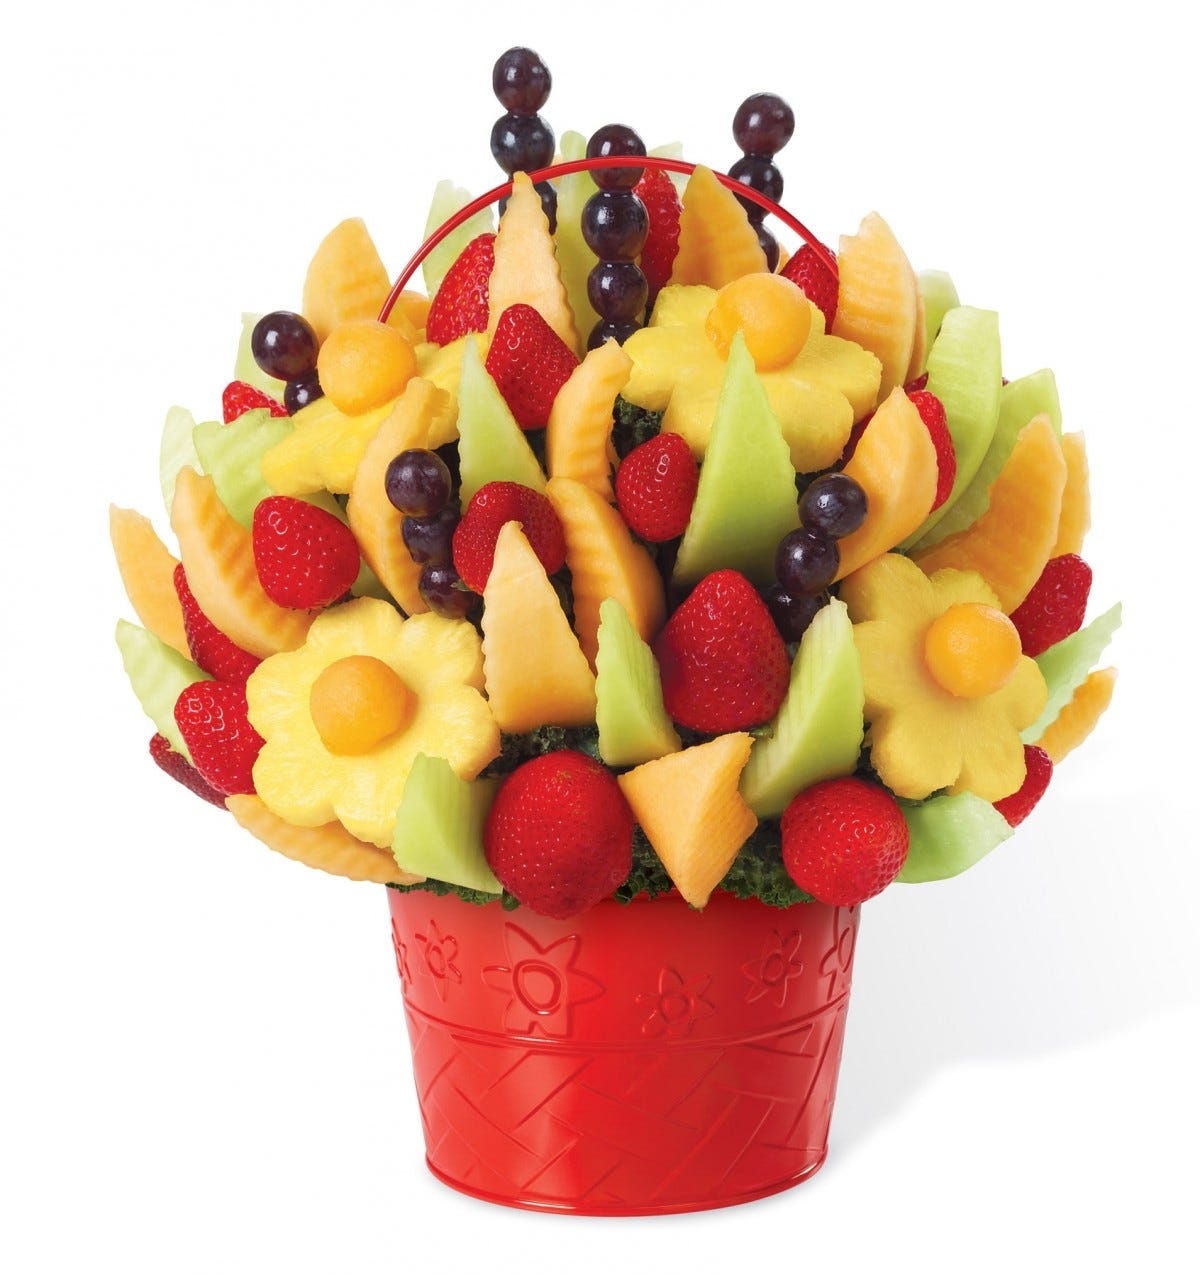 Edible Arrangements fruit basket.